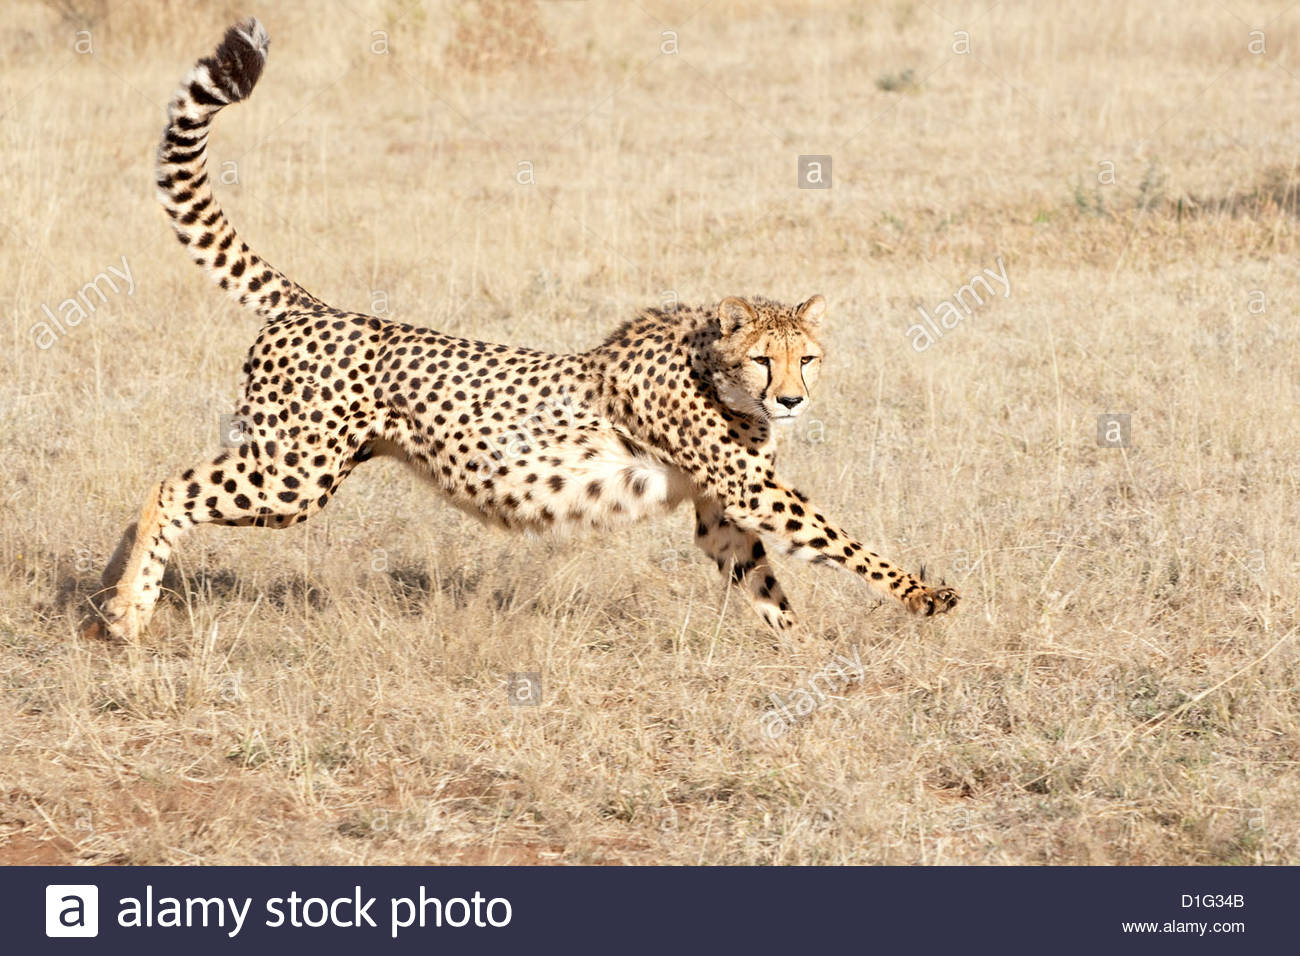 Running cheetah (Acynonix jubatus), world's fastest animal, Kalahari plains, Namibia, Africa - Stock Image